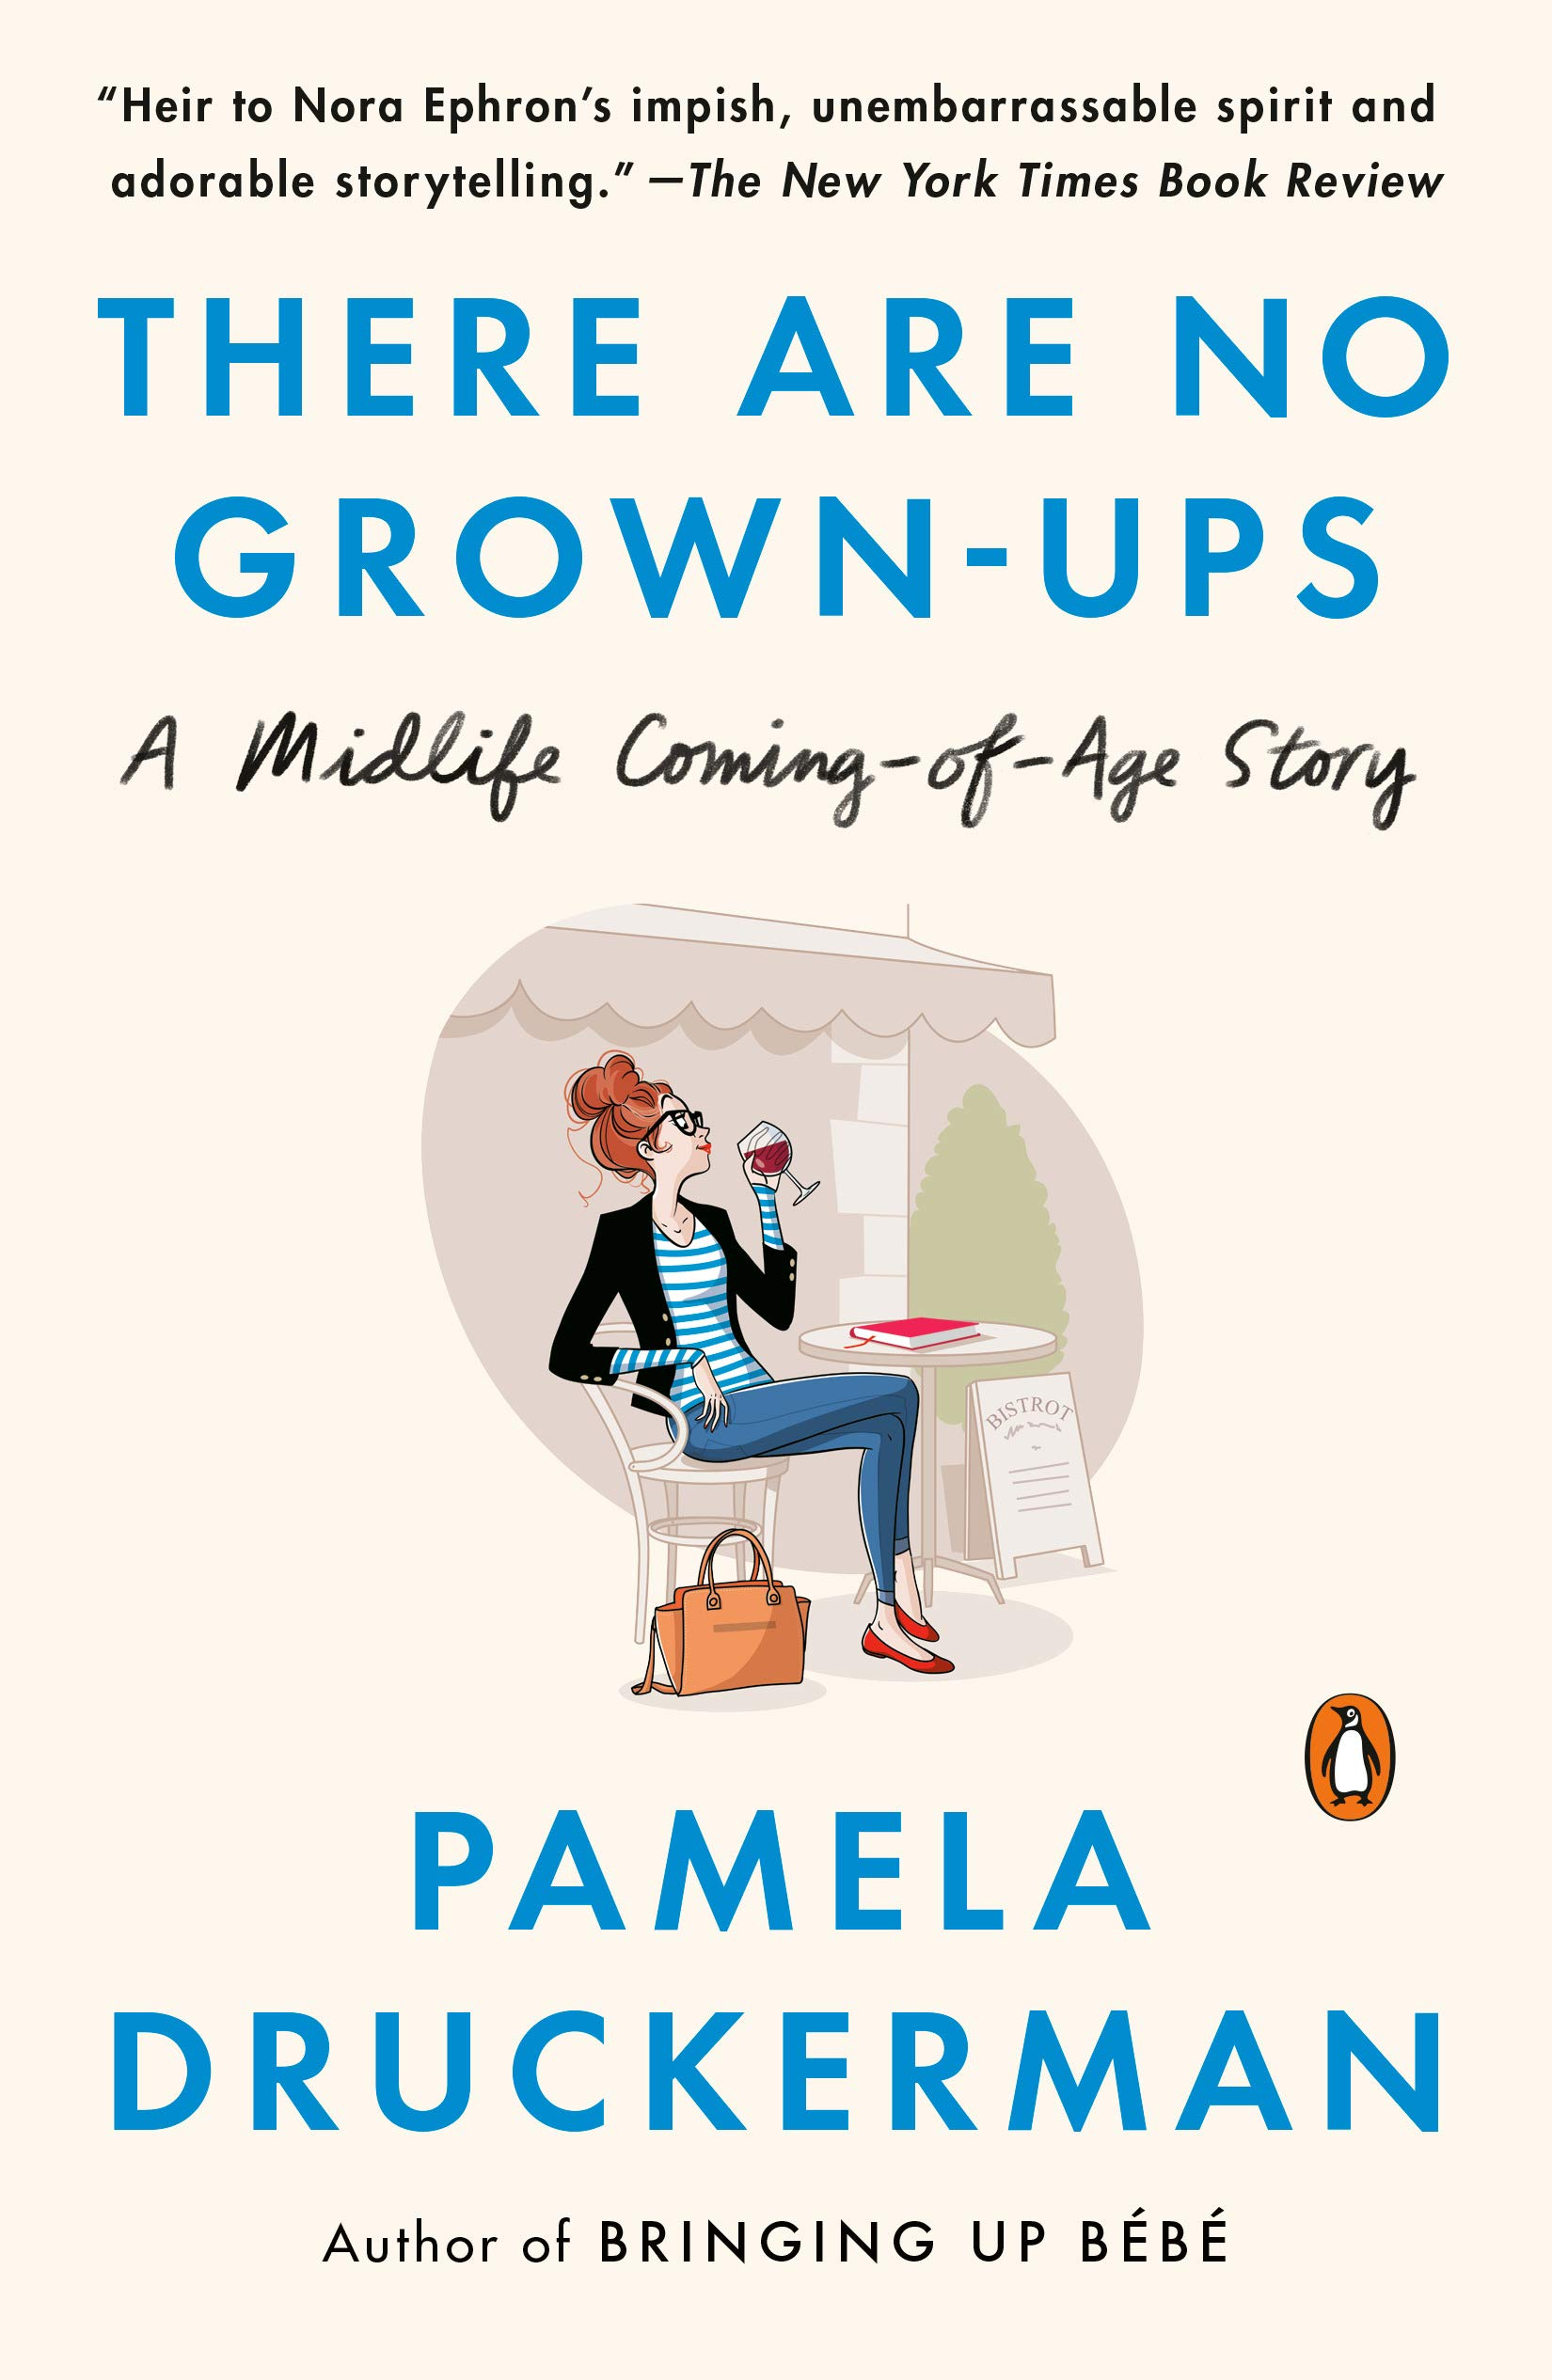 Amazon.com: There Are No Grown-ups: A Midlife Coming-of-Age ...